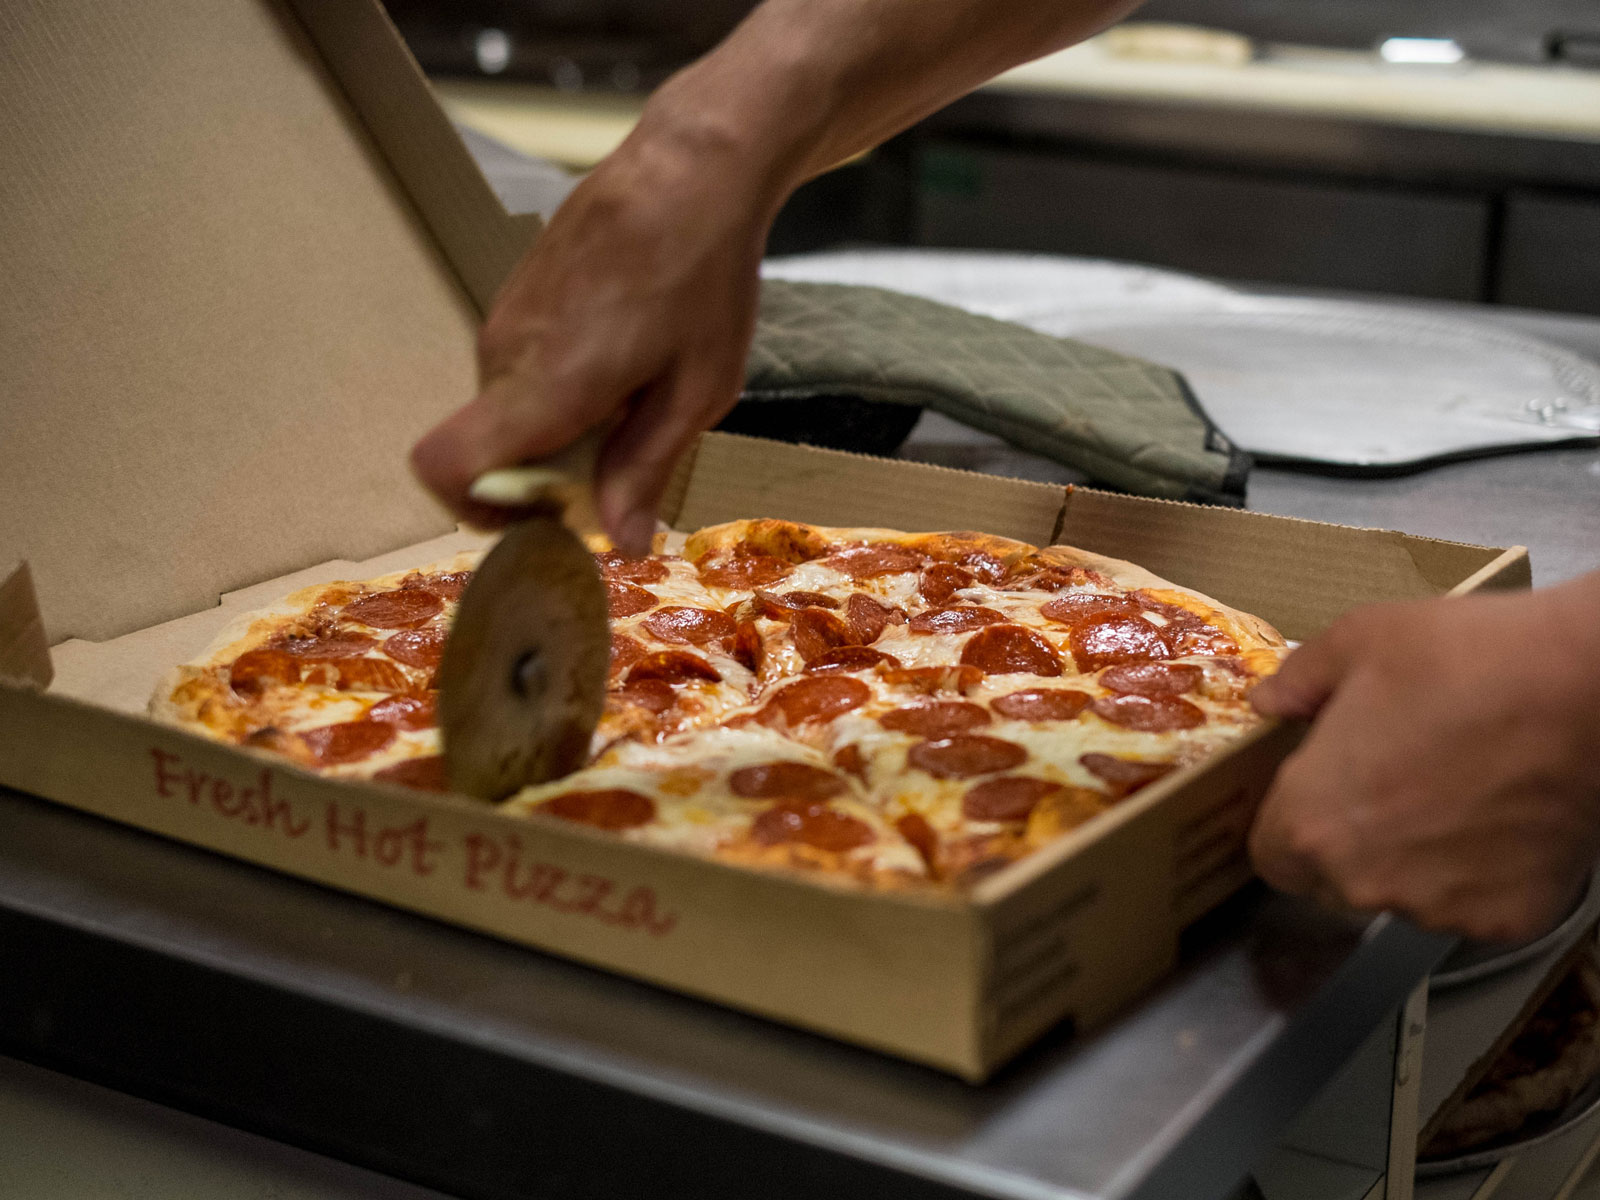 This Non-Profit Sends Free Pizza to Voters Waiting in Long Lines on Election Day